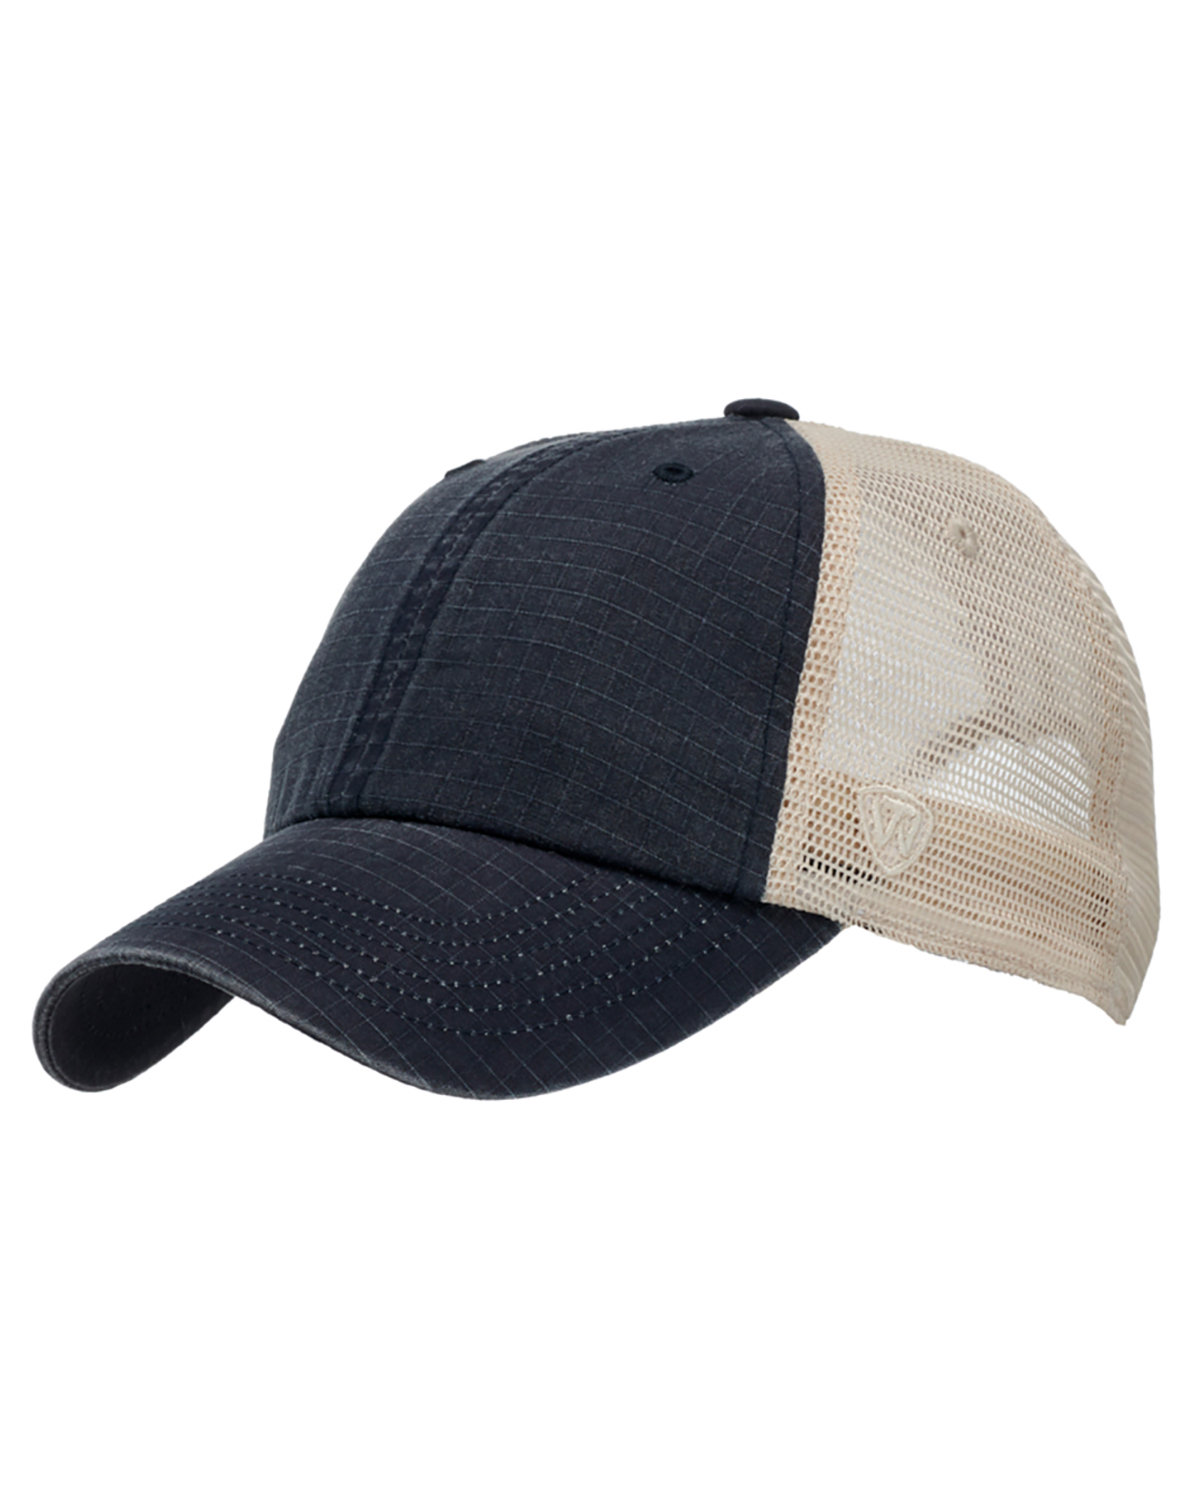 Top Of The World Riptide Ripstop Trucker Hat NAVY